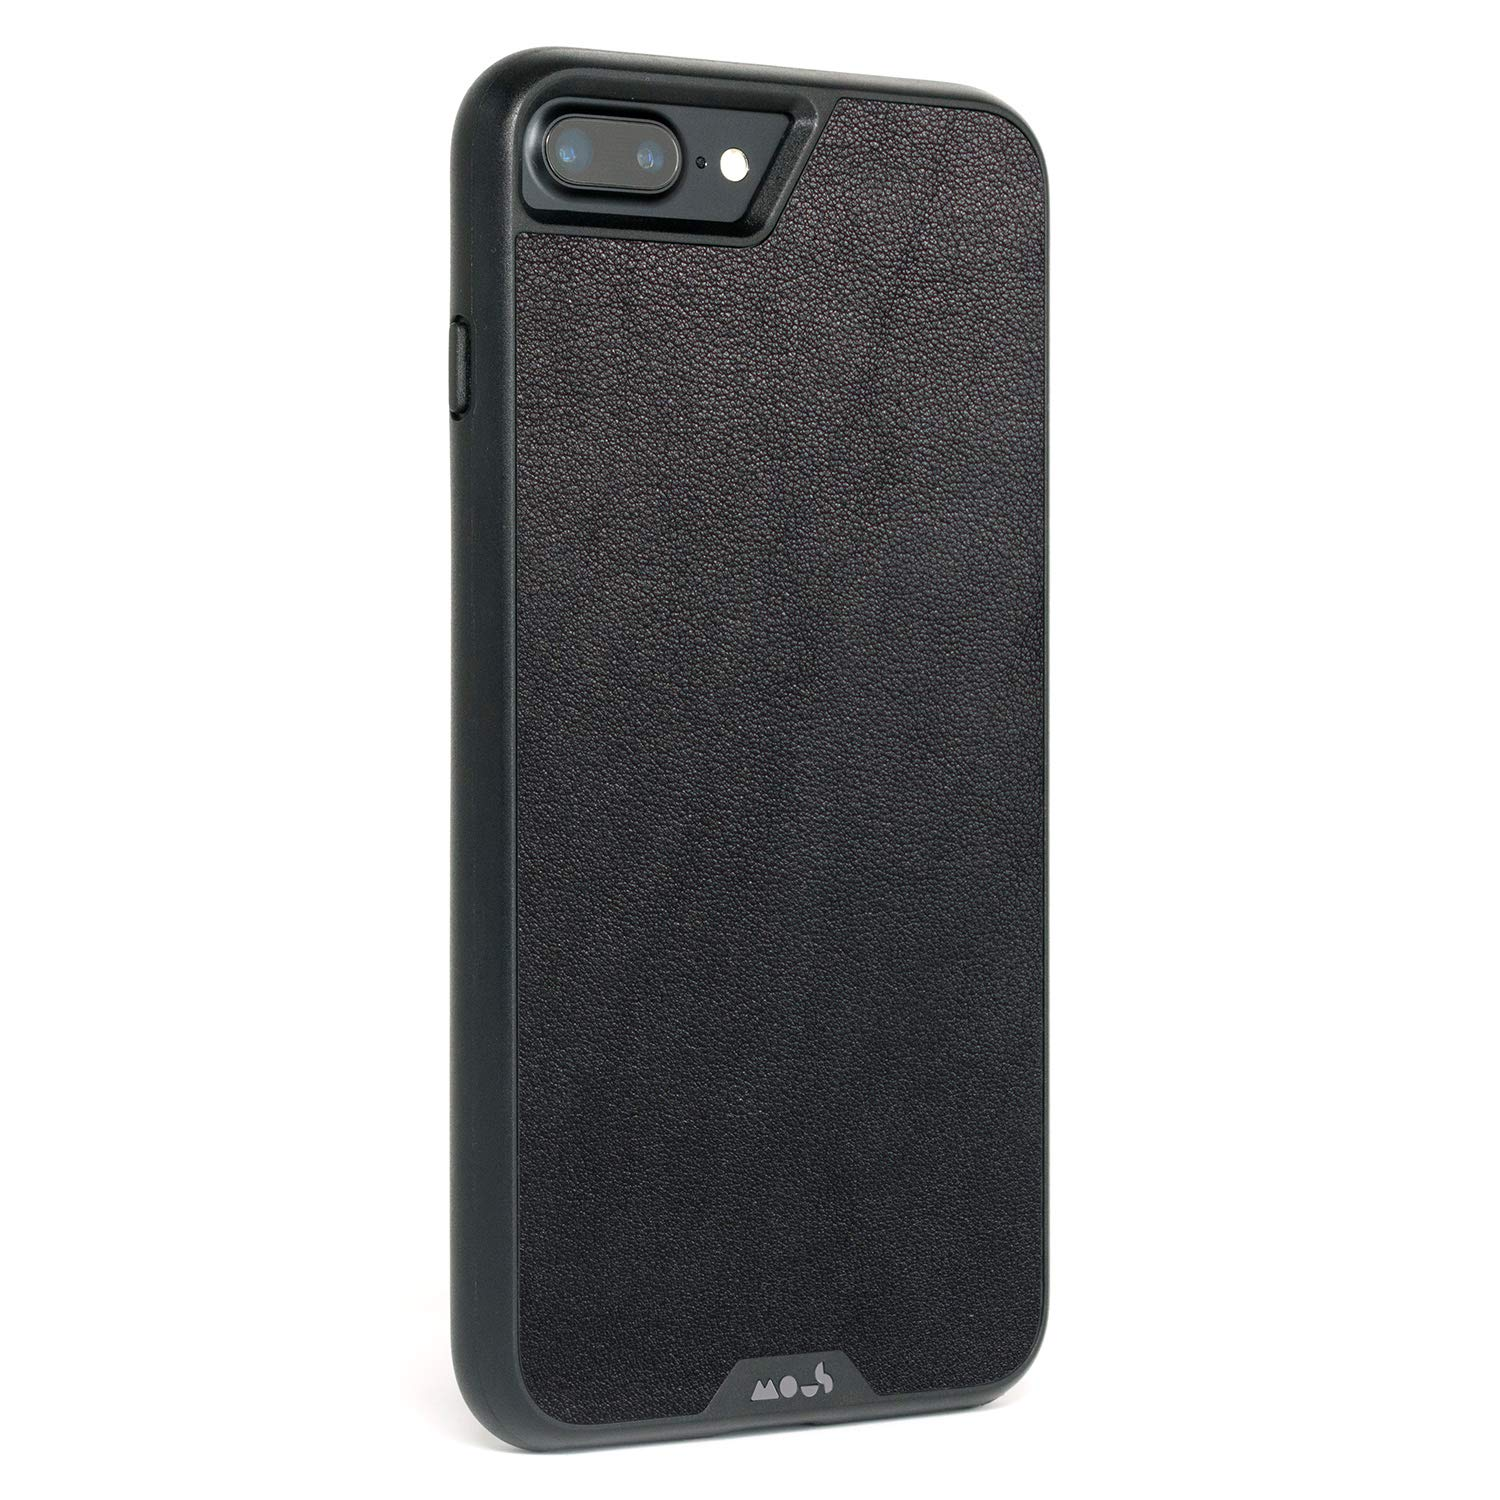 Mous Protective iPhone Case 8+/7+/6s+/6+ Plus - Black Leather - Limitless 2.0 by MOUS (Image #2)